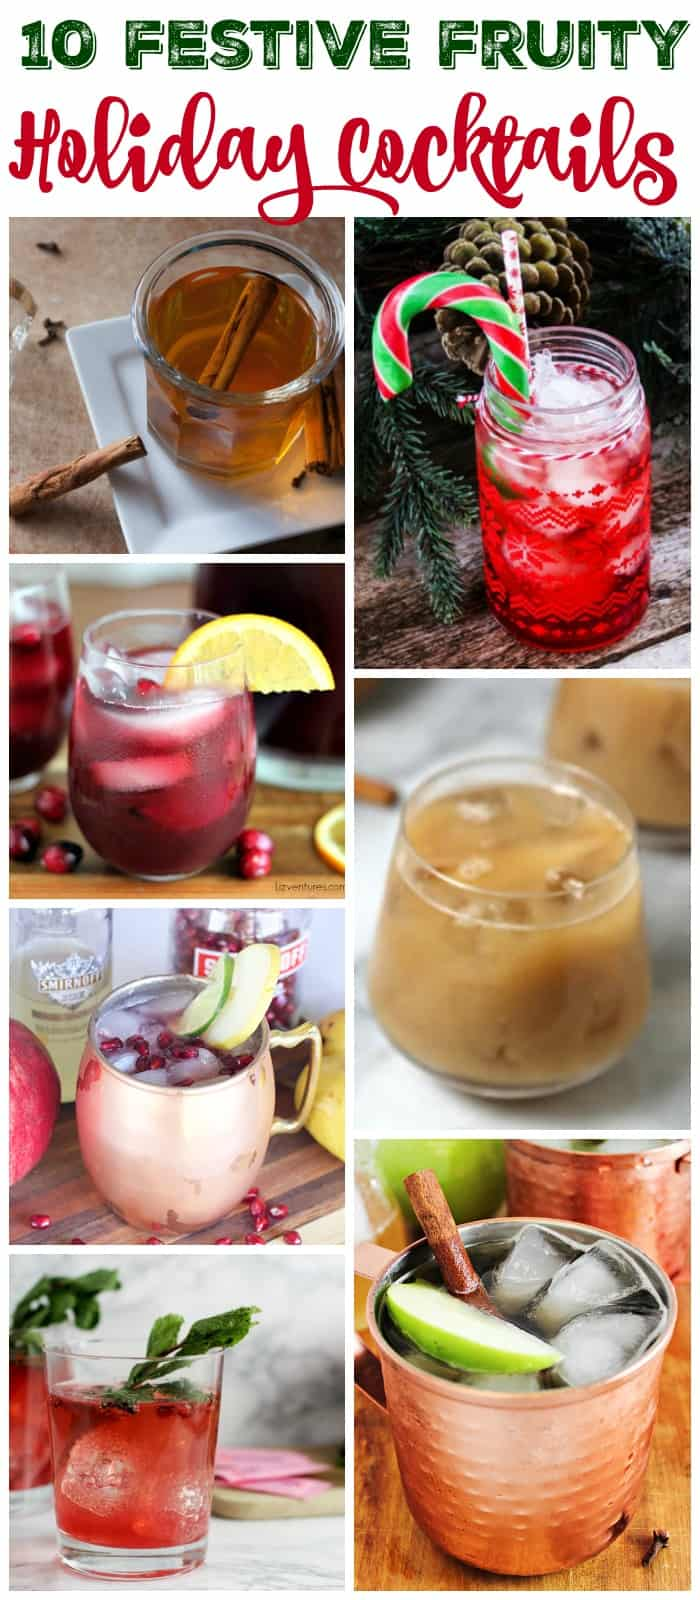 10 festive and fruity holiday cocktail recipes perfect for your Christmas parties or holiday guests